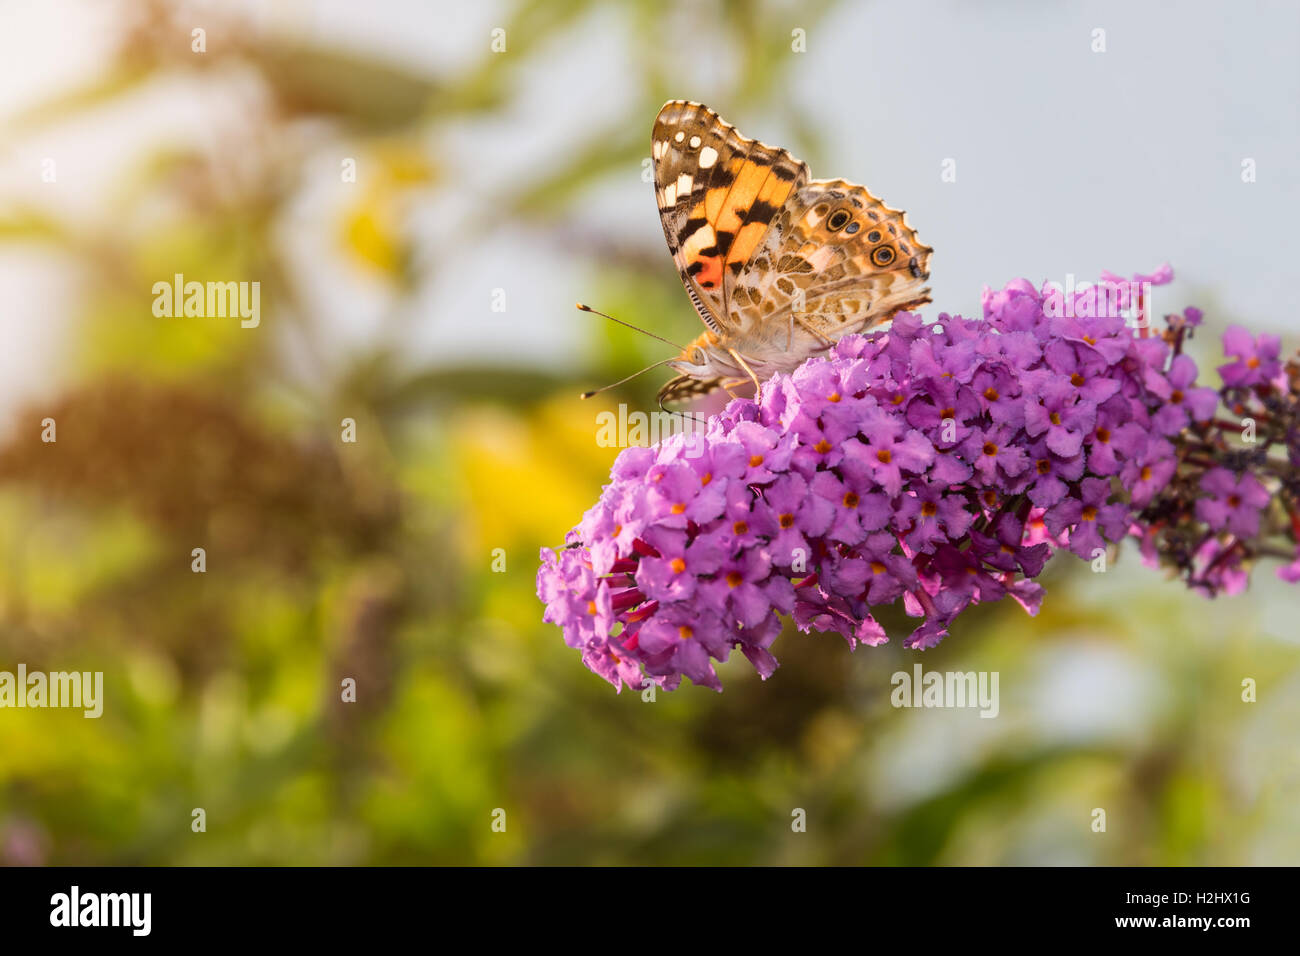 Painted Lady butterfly, Vanessa cardui, feeding on nectar from buddleia flower, lit by afternoon sun. - Stock Image